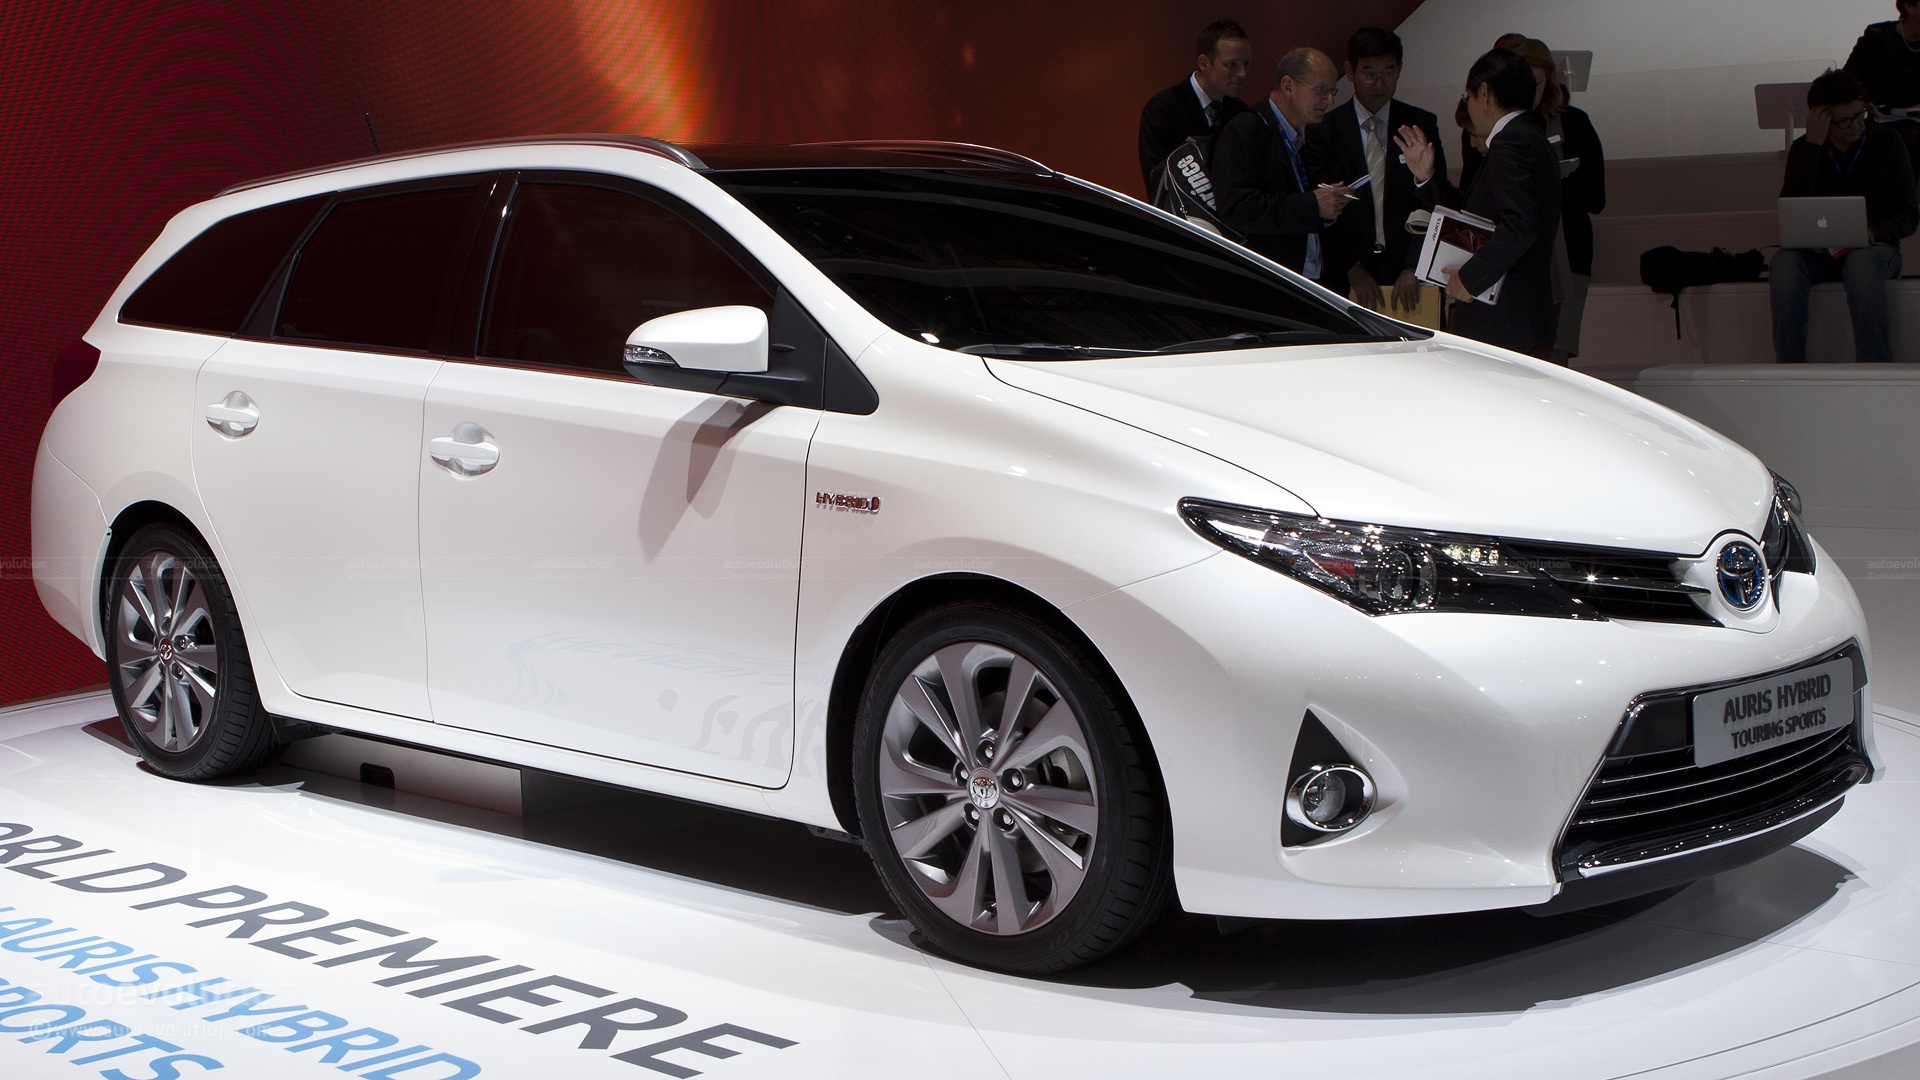 2013 toyota auris ii pictures information and specs auto. Black Bedroom Furniture Sets. Home Design Ideas